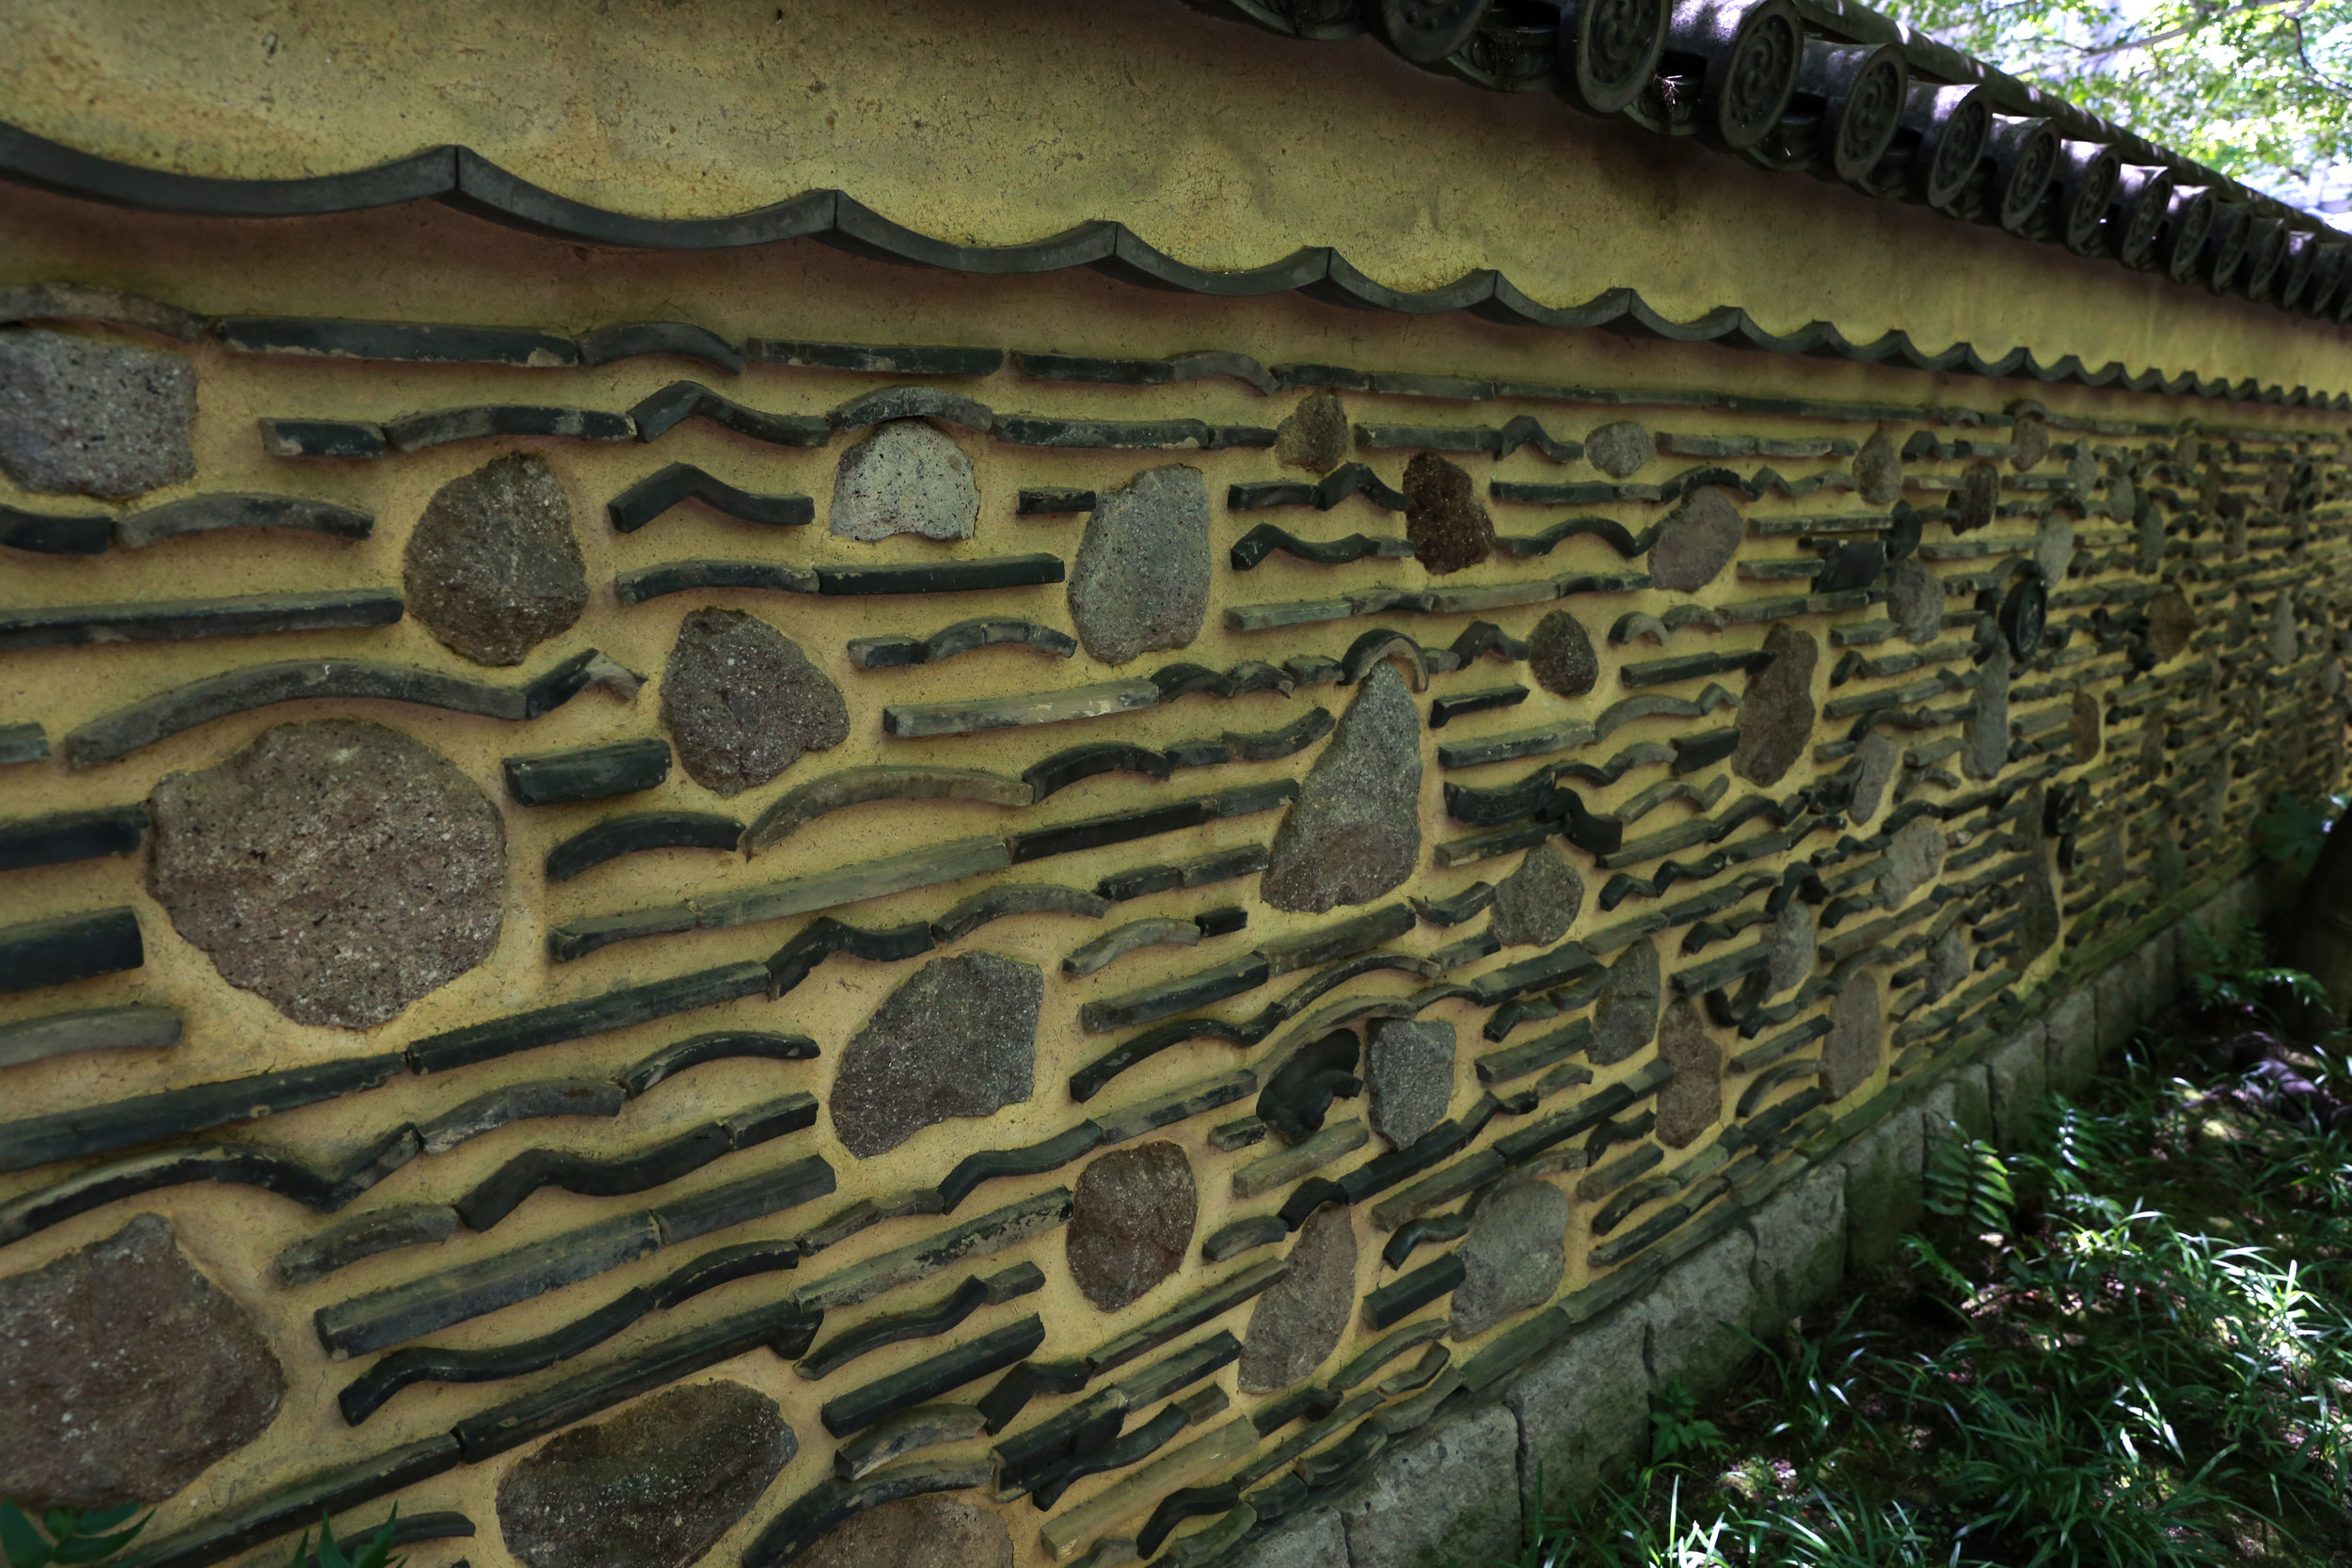 Hakatabei walls surround the Rakusui-en's garden and tea rooms in Fukuoka, Japan, June 22, 2018. The Rakusui-en's hakatabei wall dates back to the Sengoku period and is made up of recycled tiles, rocks, and dirt.